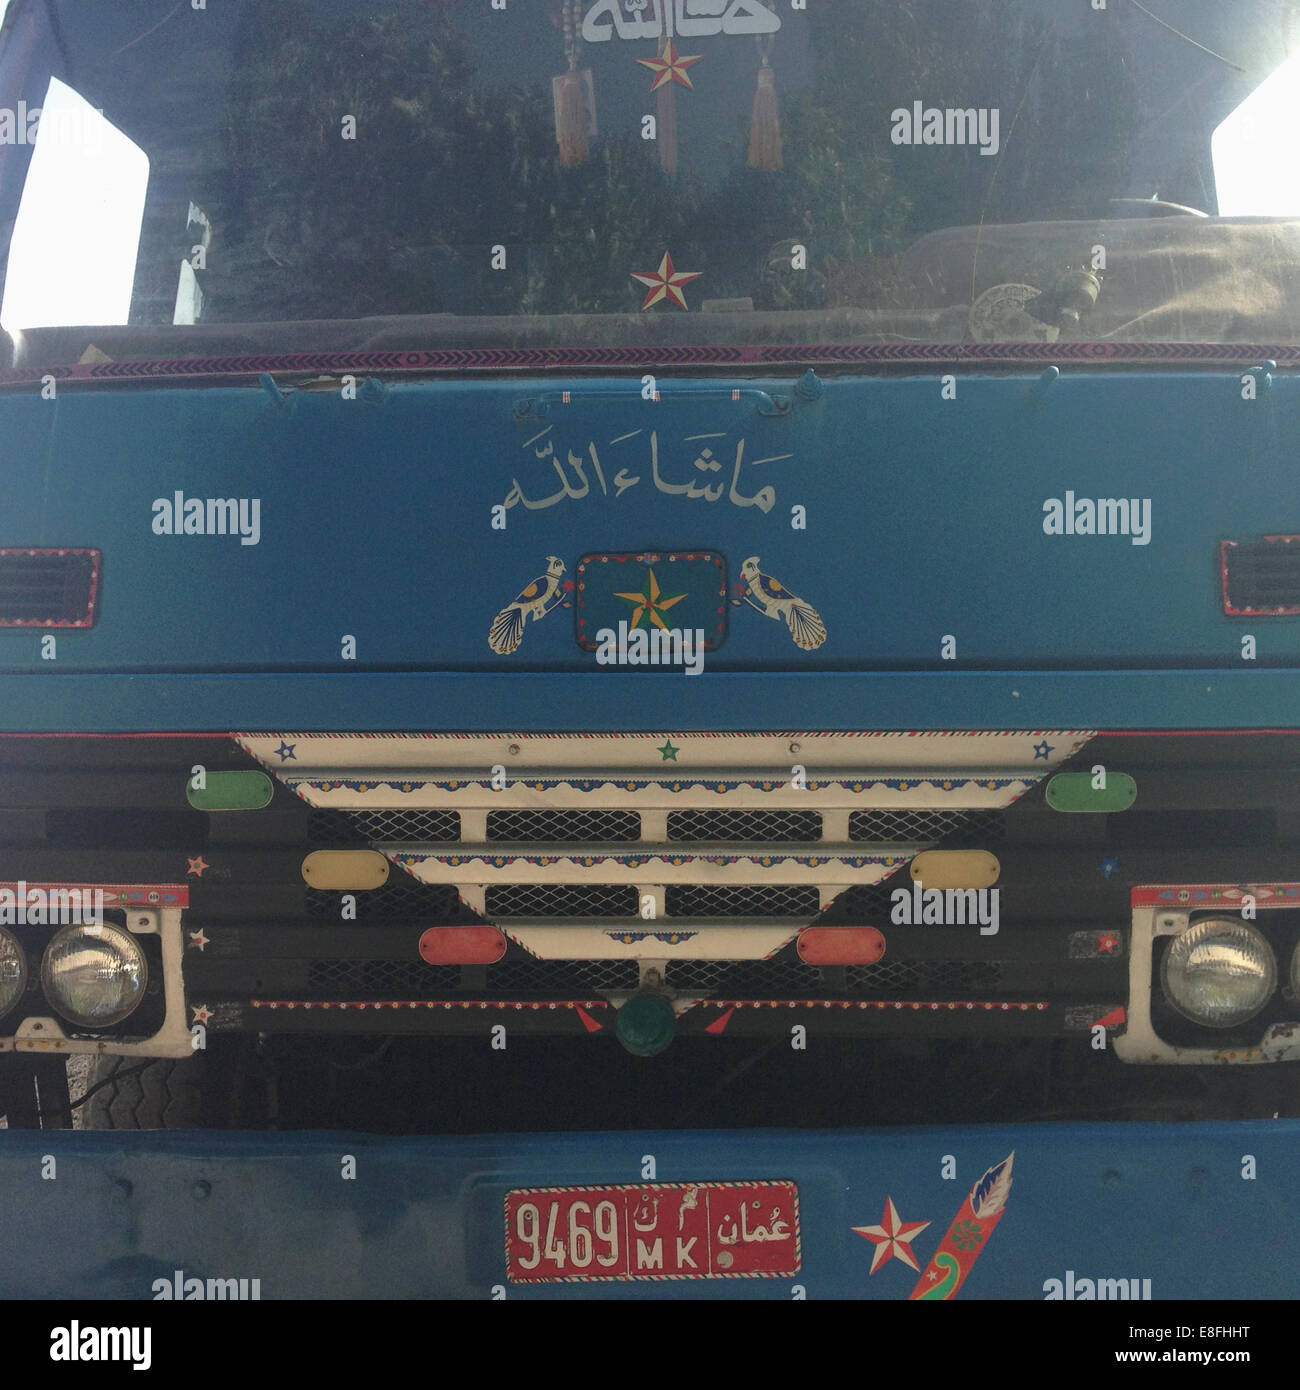 Oman, Muscat, Front of truck - Stock Image